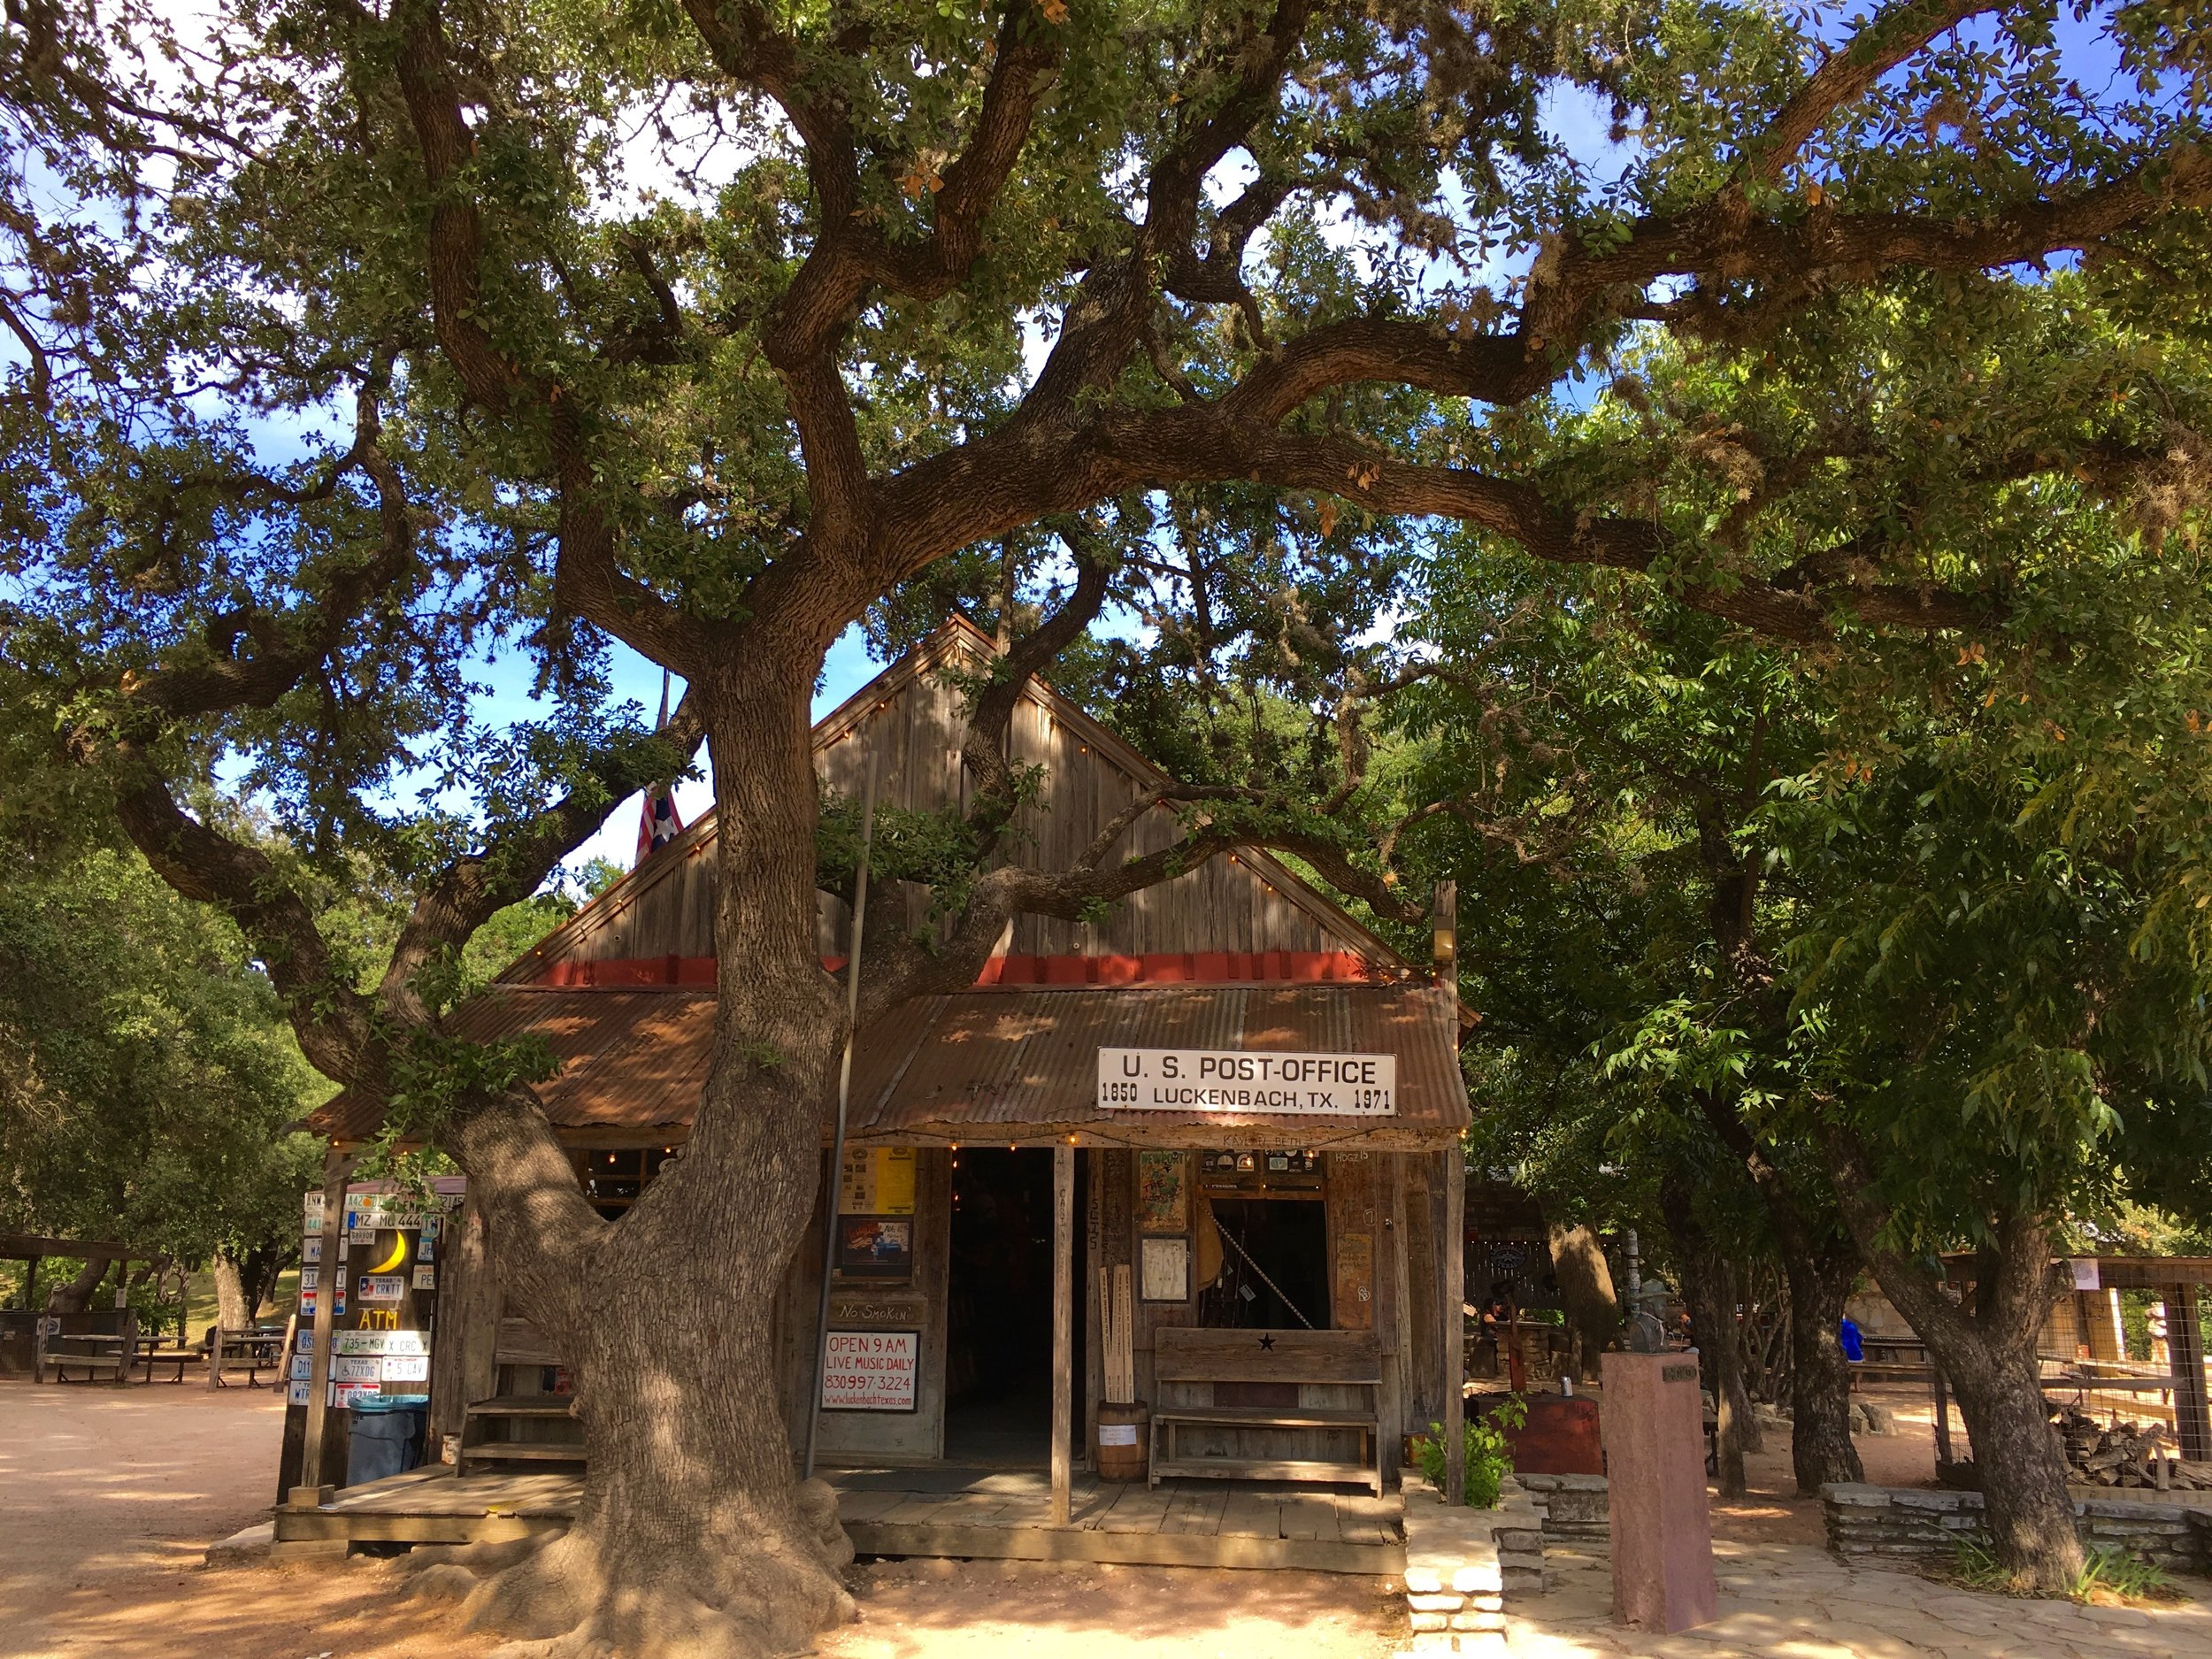 Let's go to Luckenbach, Texas with Waylon and Willie and the boys...